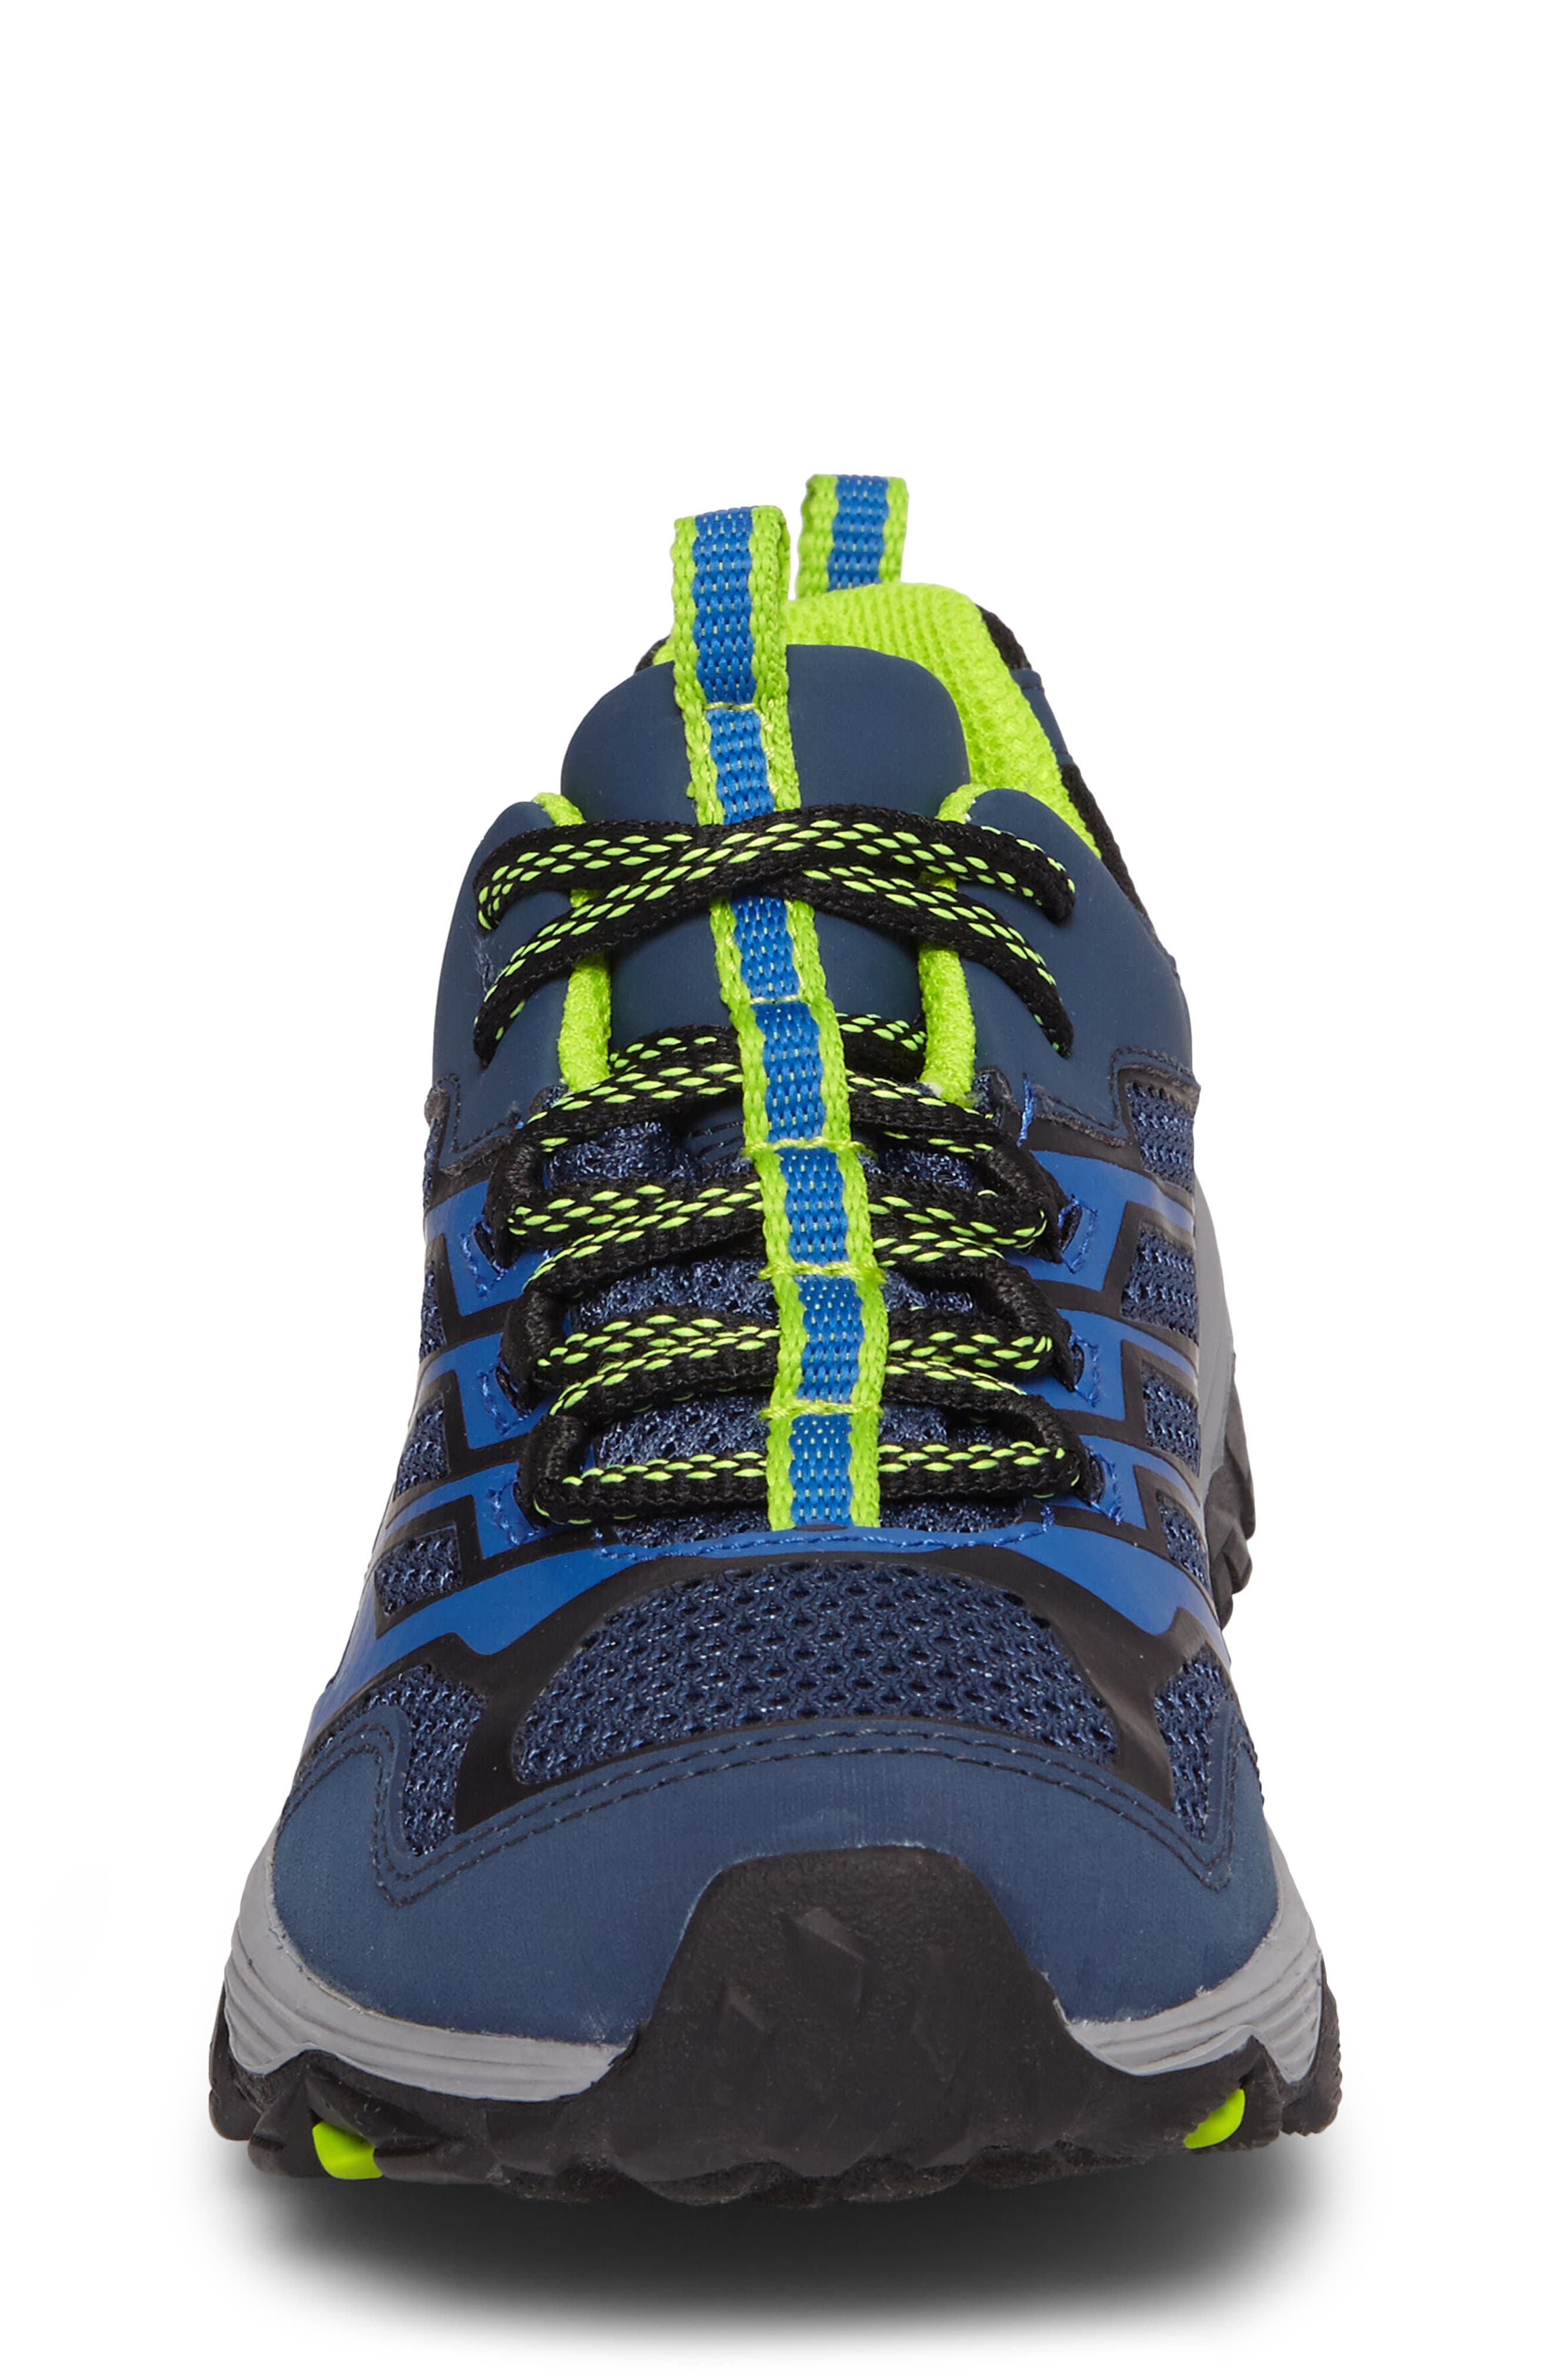 MERRELL, Moab FST Polar Low Waterproof Sneaker, Alternate thumbnail 4, color, NAVY/ BLUE